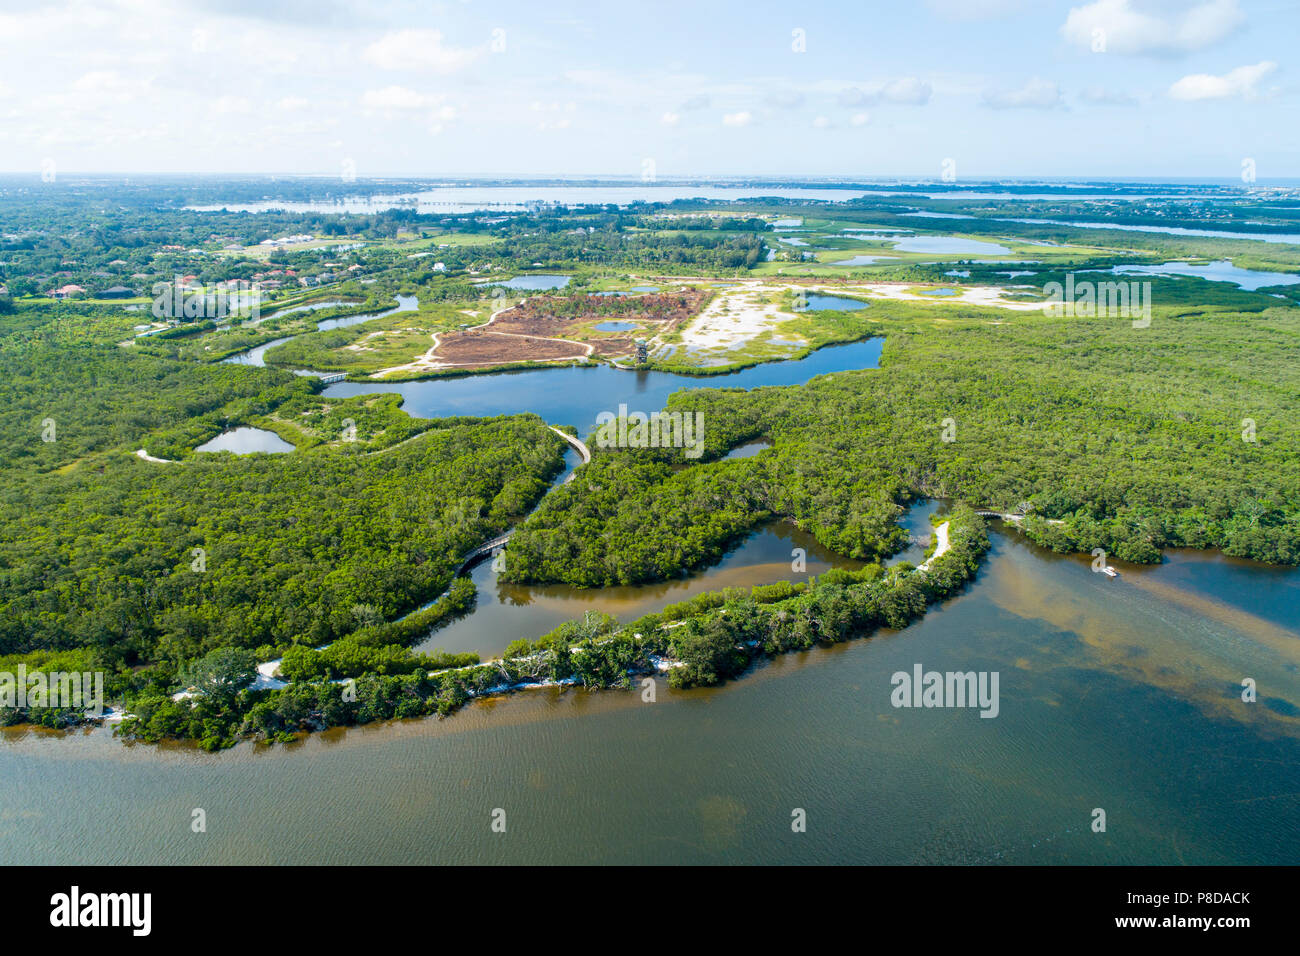 Robinson Preserve Bradenton, A 487-acre mosaic of mud flats, mangrove swamps,  beaches and observation tower along with many hiking and biking trails  - Stock Image